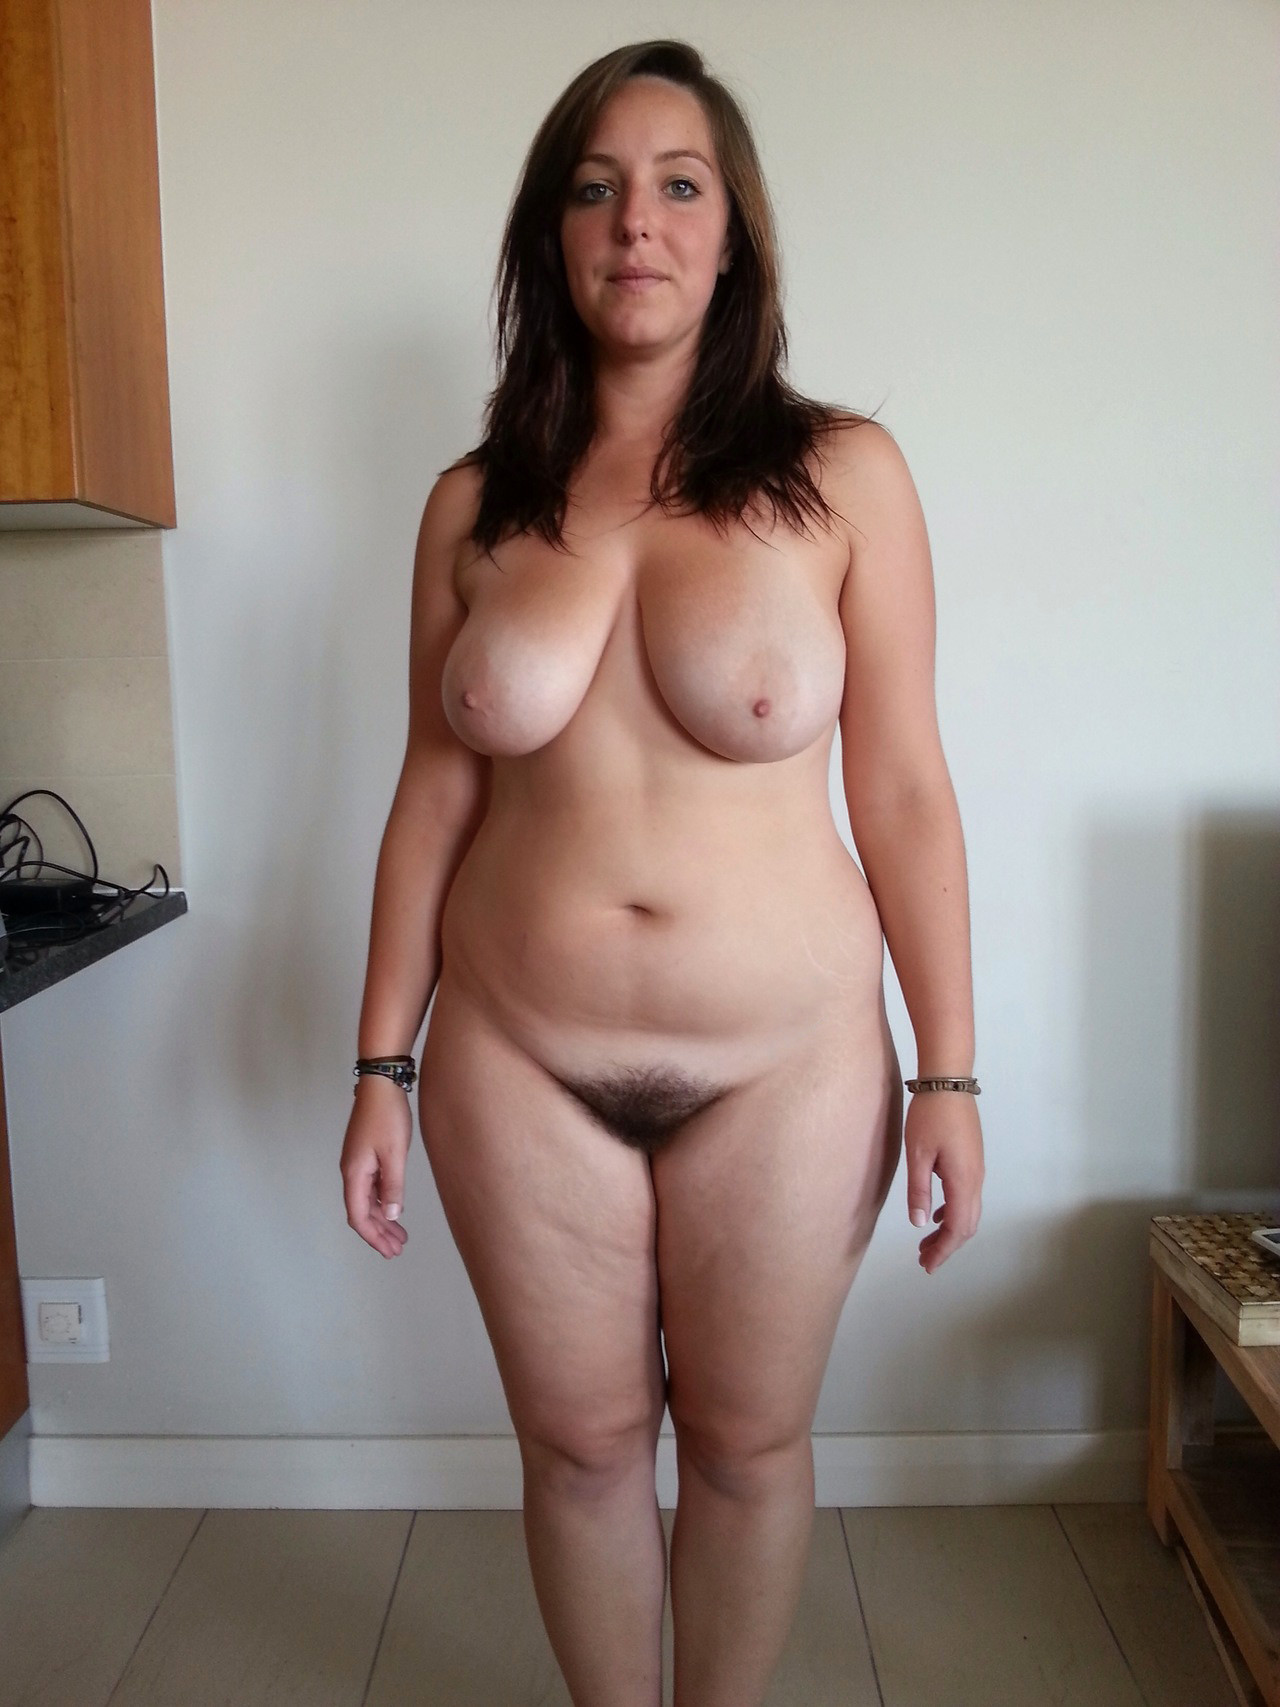 shot-anus-big-fat-chubby-nude-women